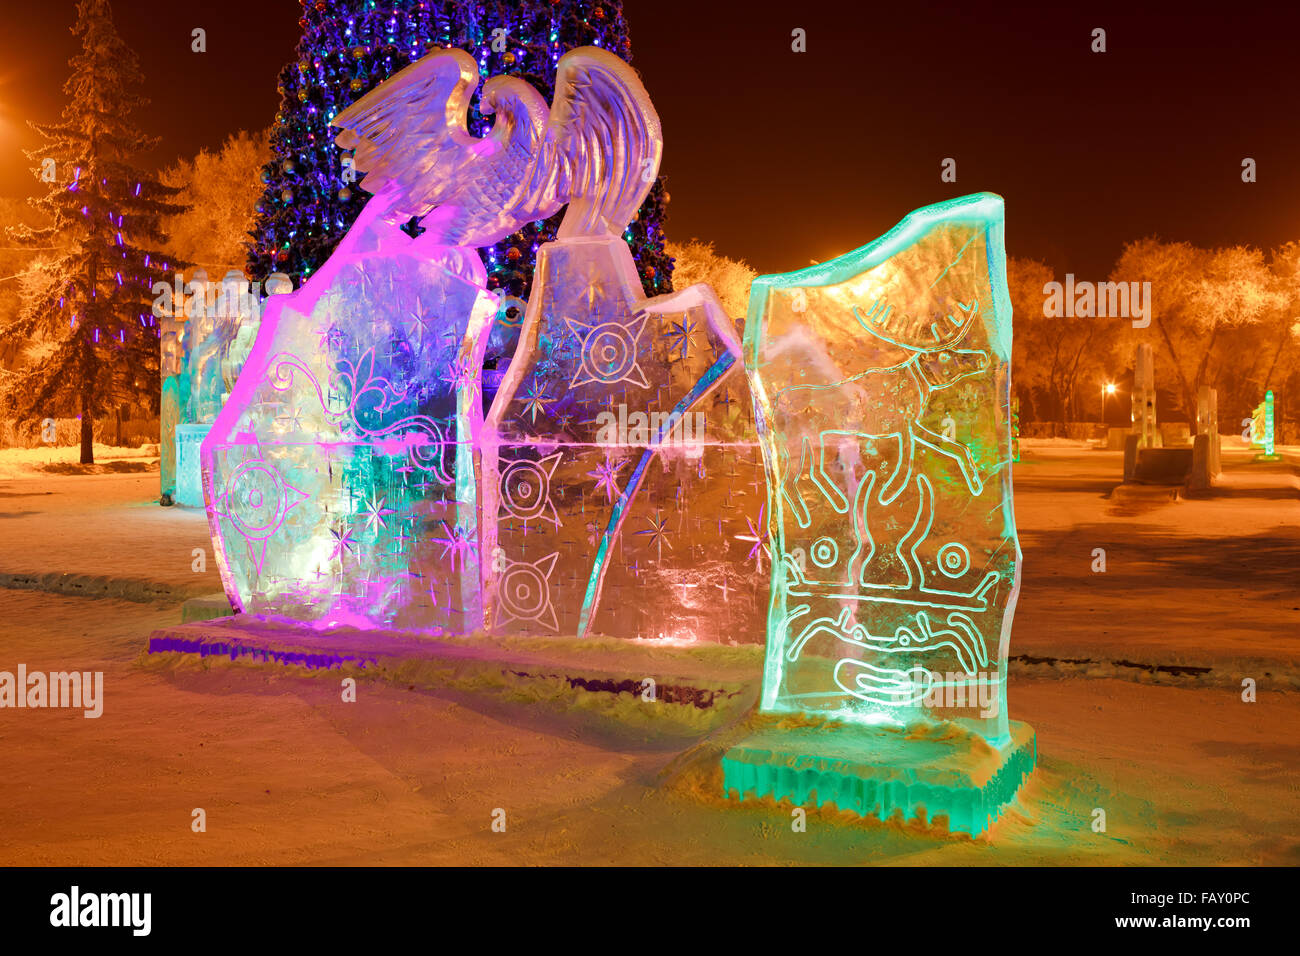 Ice sculpture in the city park on Christmas and New Year with cave paintings of deer, mythical creatures, solar - Stock Image